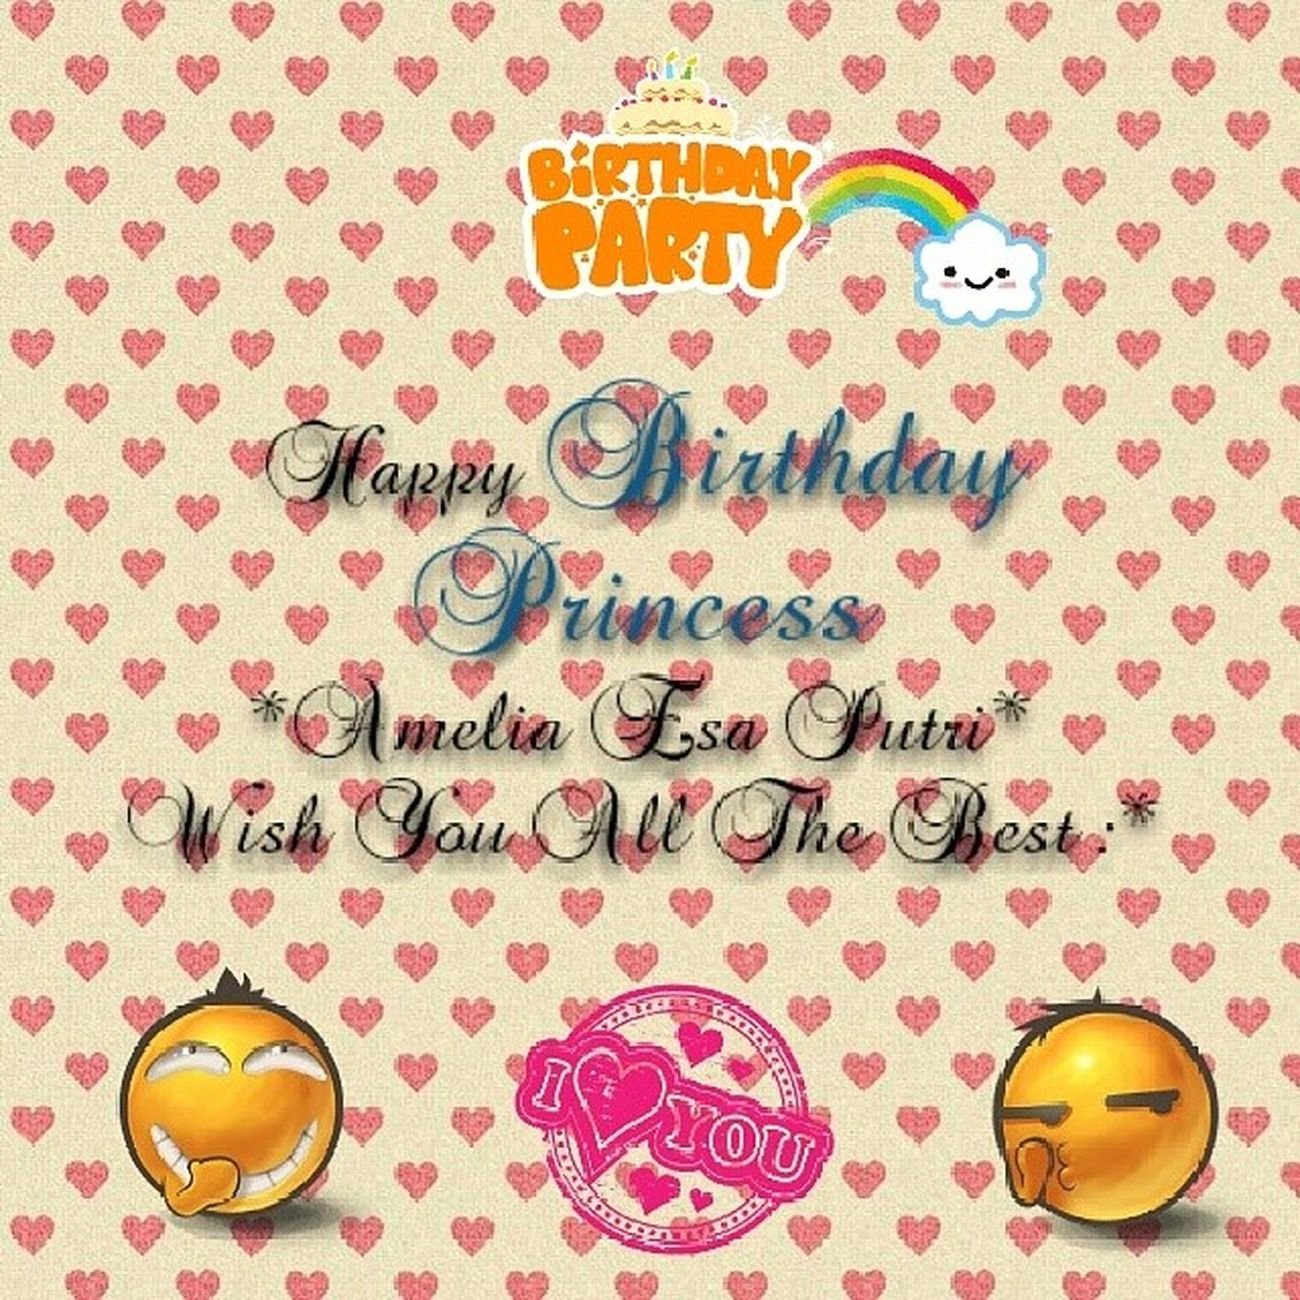 Happy Birthday My Princess Birthday Amel Cute Specialforyou instaedit instalike instagram instadaily instaphoto instamoment likelike likephoto like4like like likeedit instafollowers